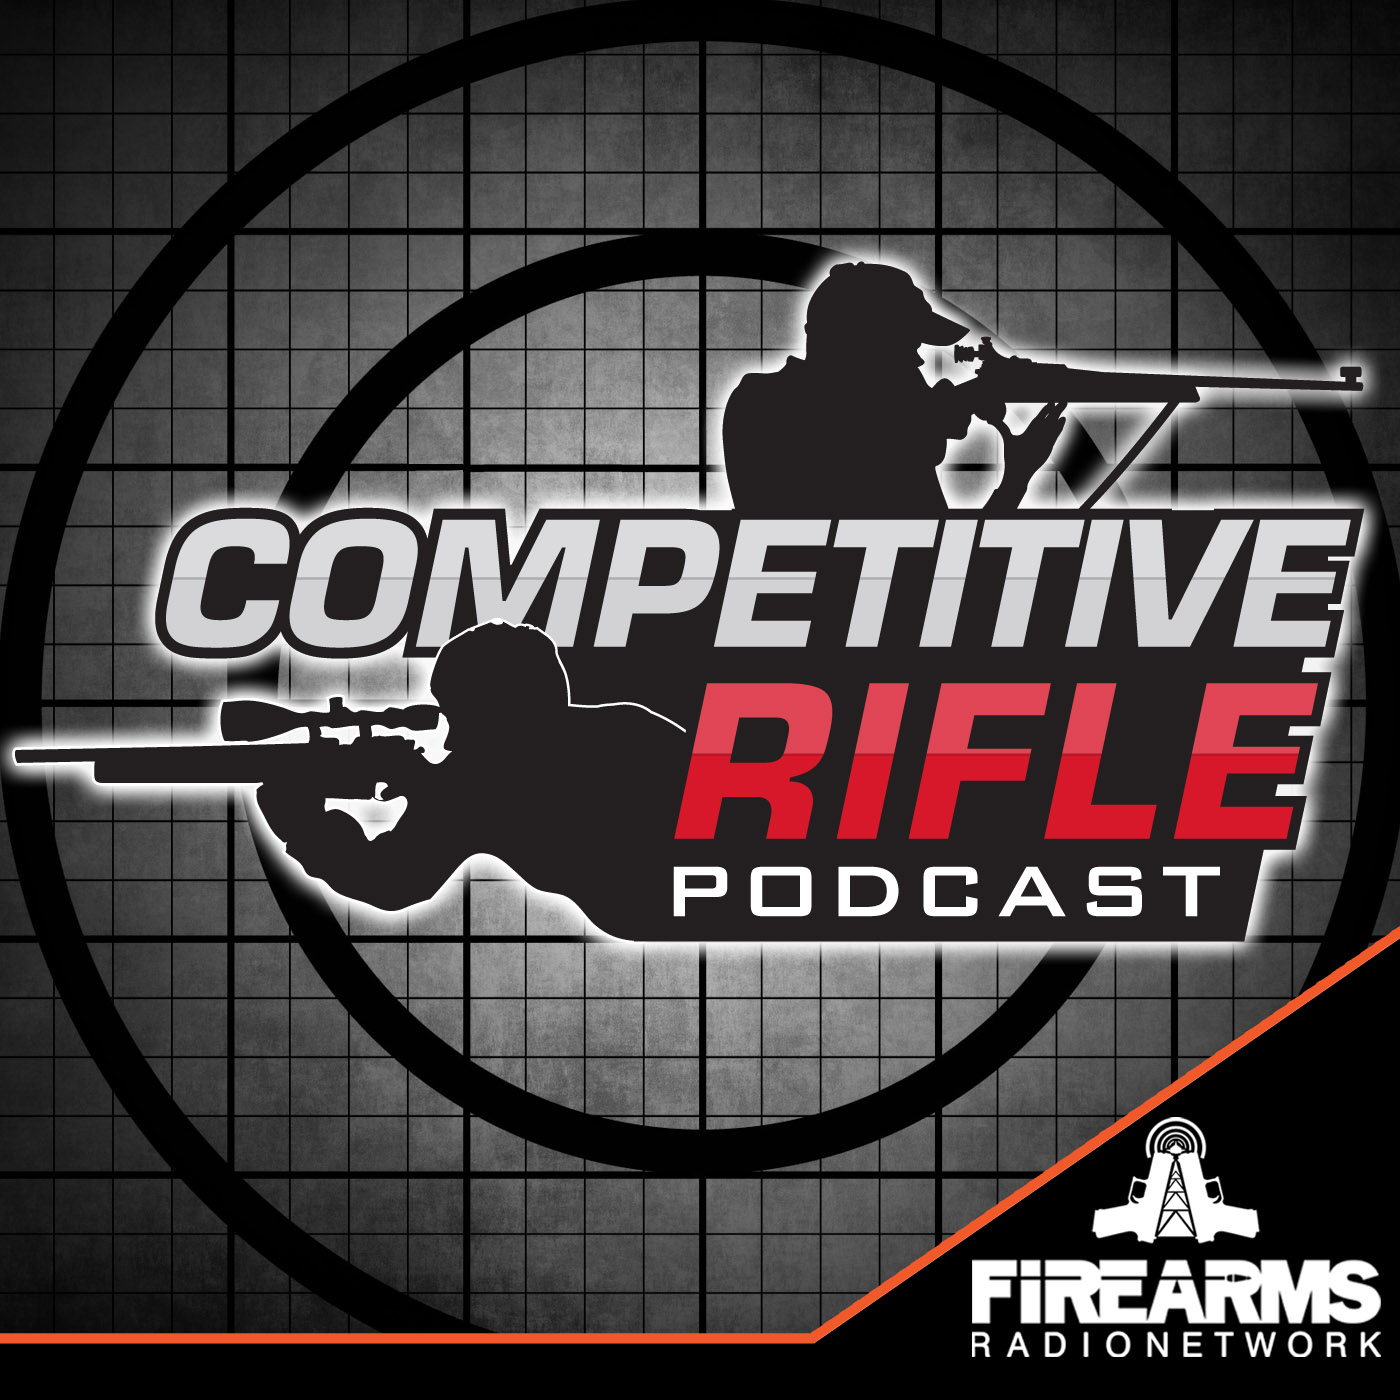 Competitive Rifle